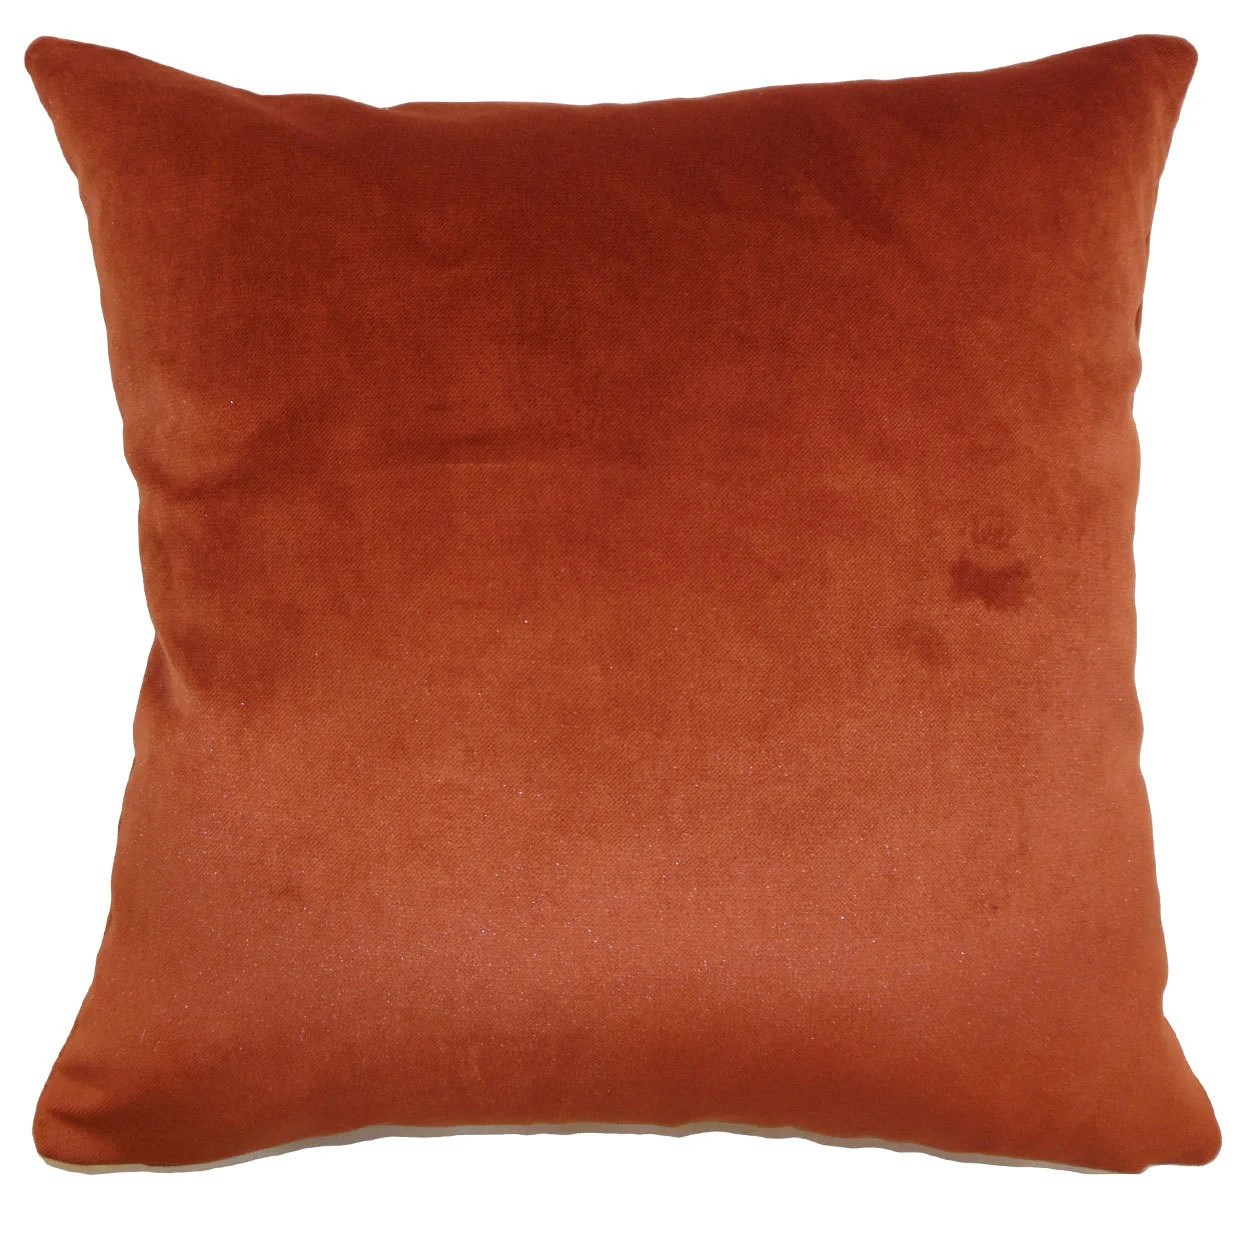 juno solid 24 x 24 down feather throw pillow rust